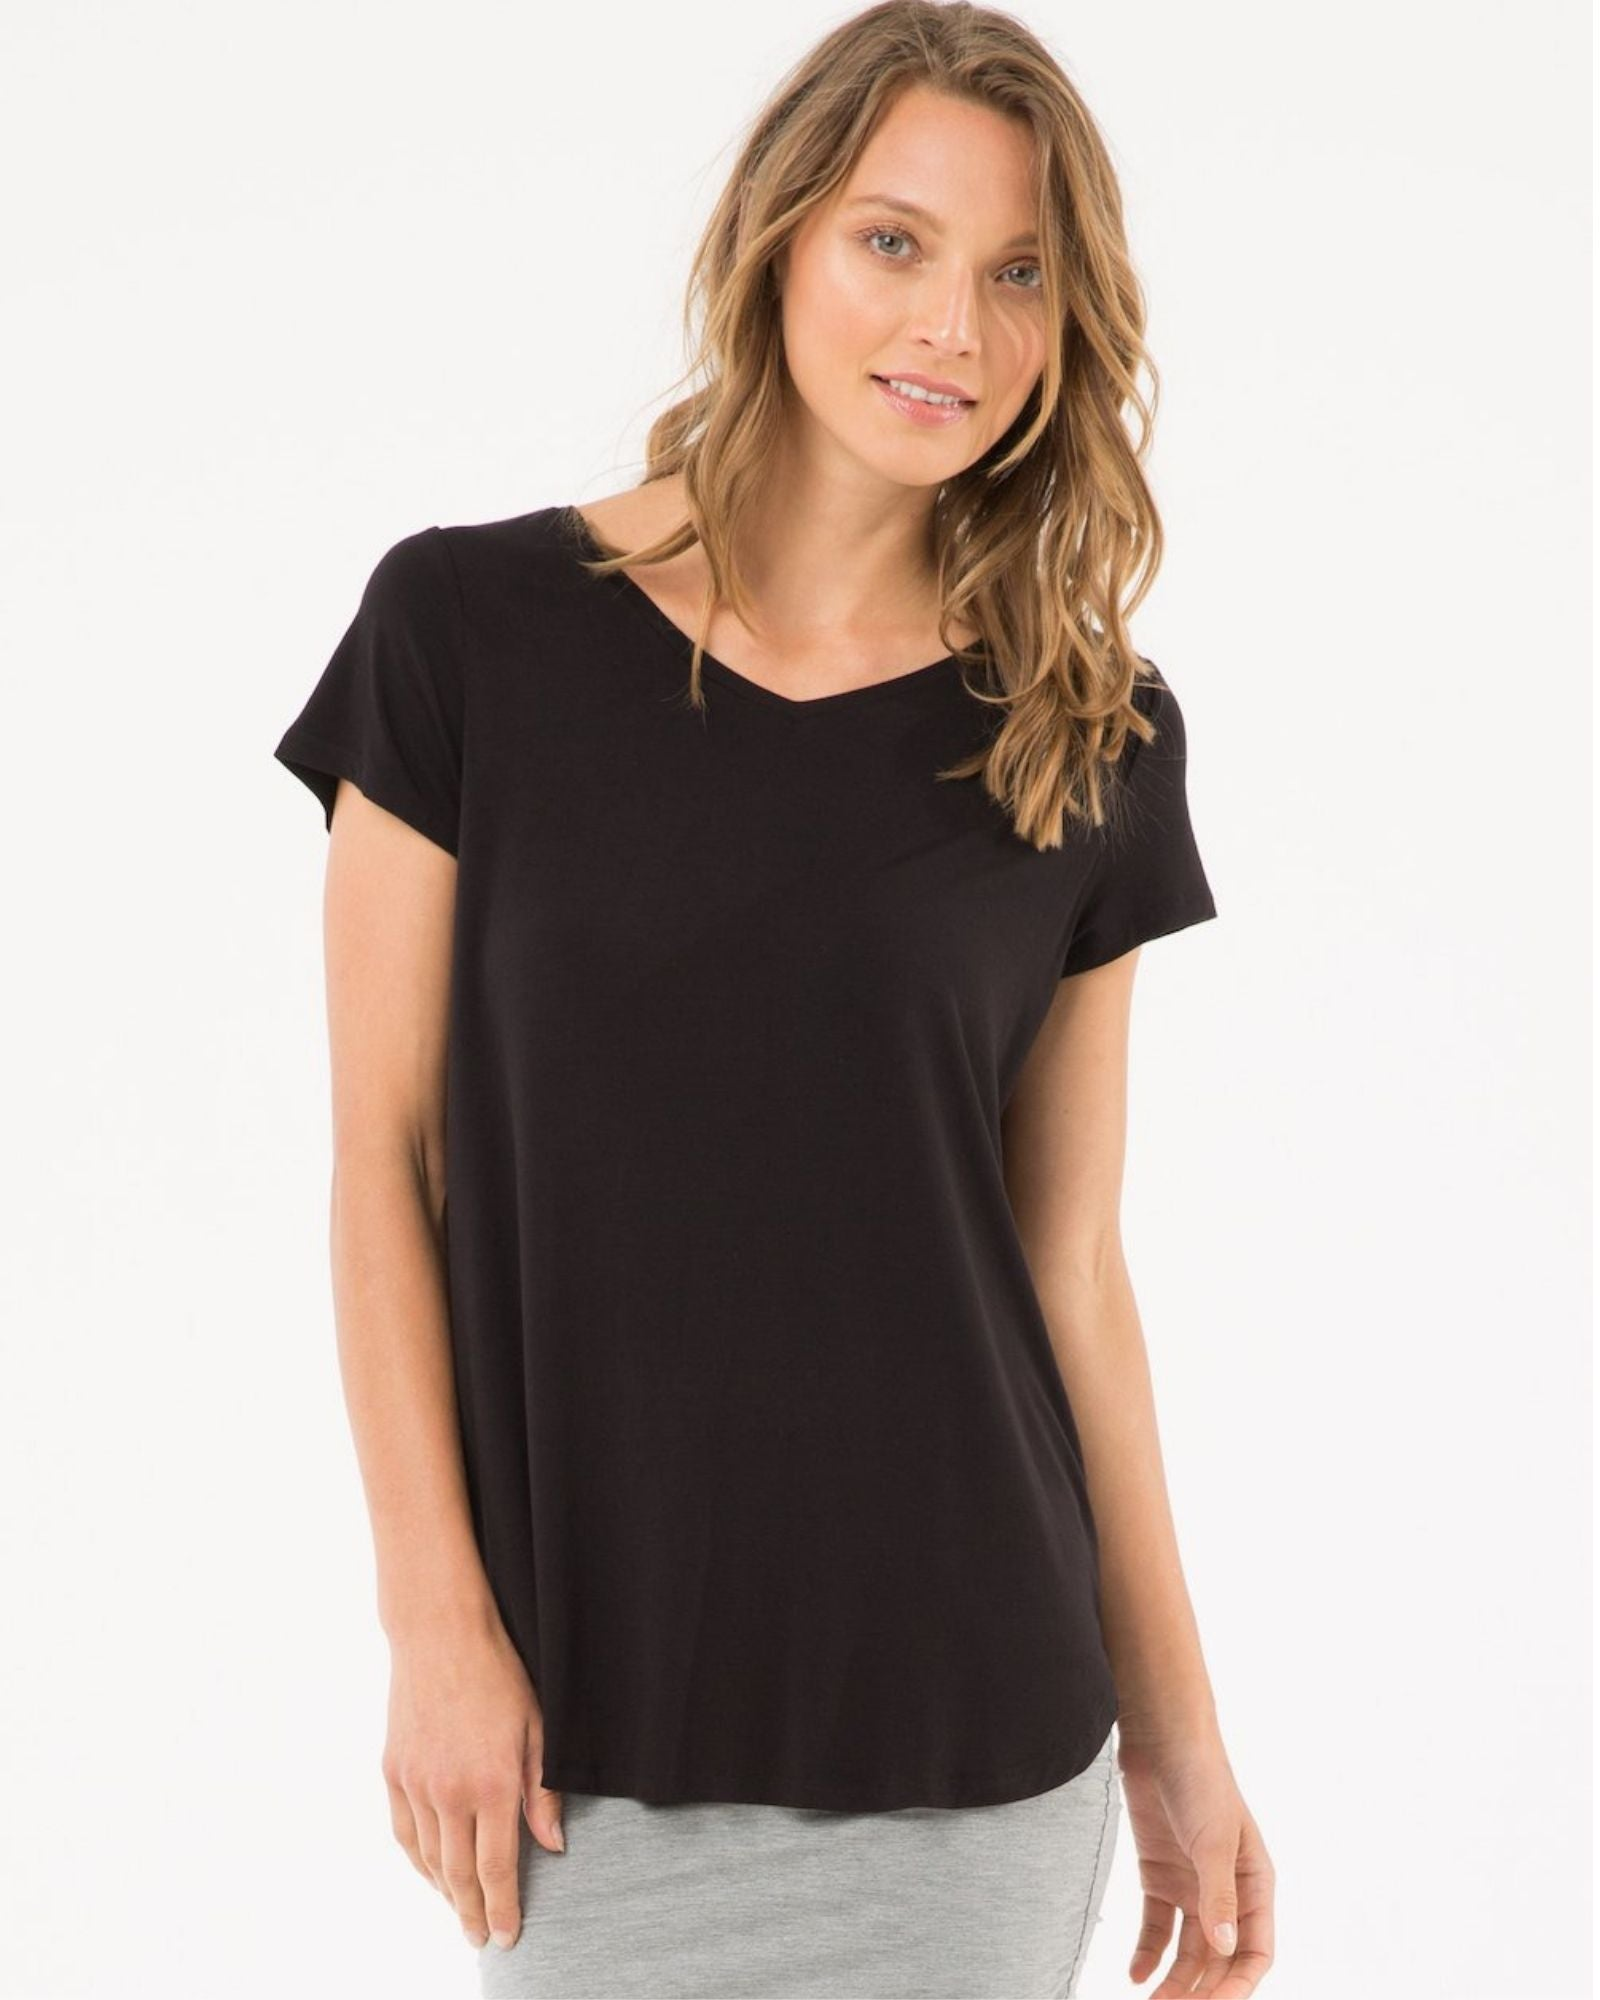 Bamboo Eadie Top -Black Size 10-24